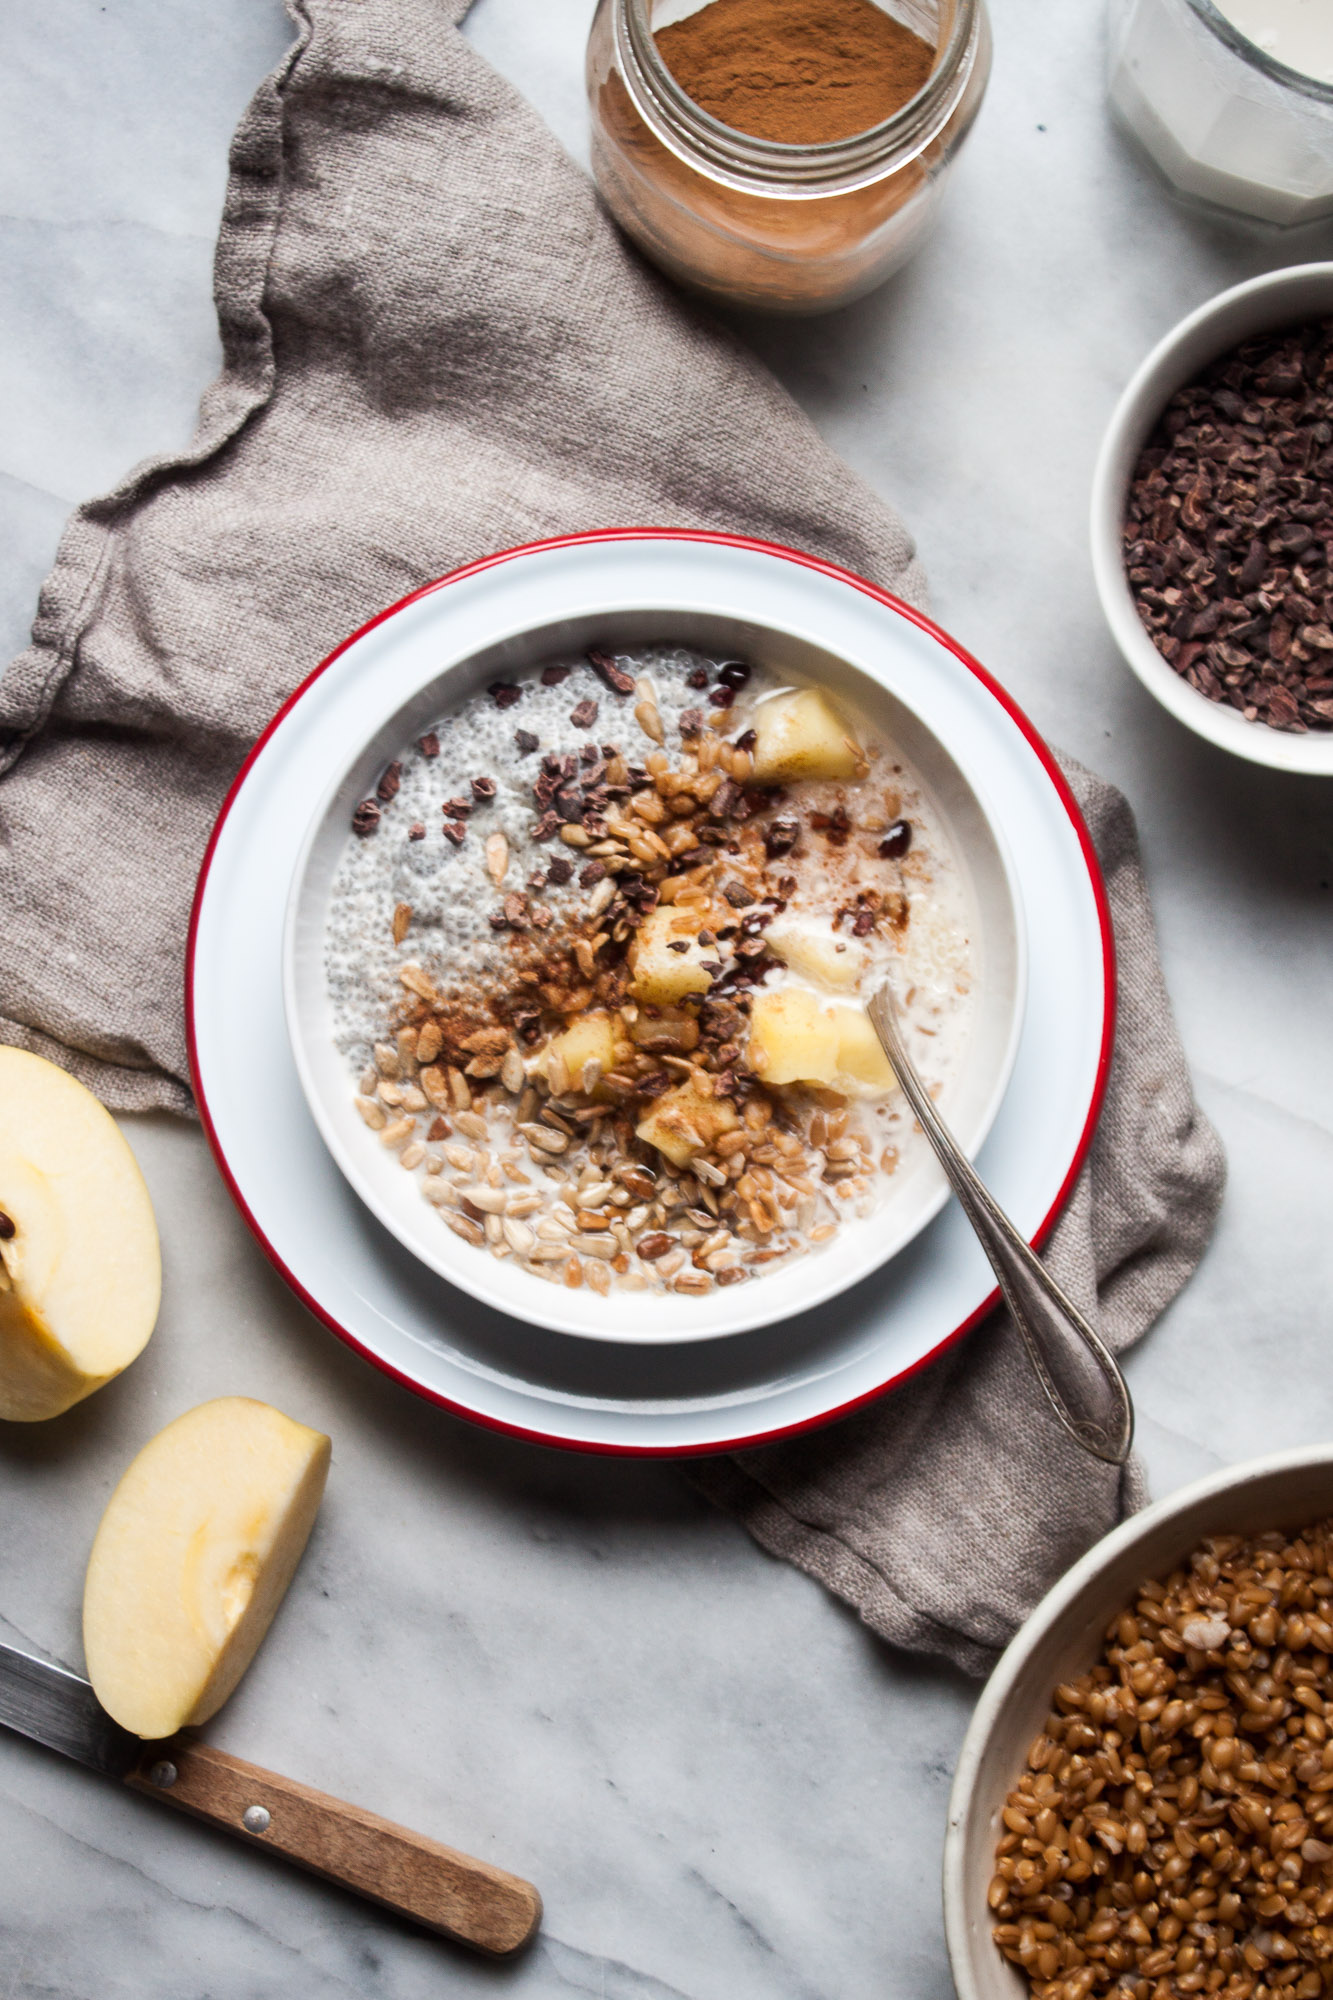 Winter Farro Breakfast Bowl